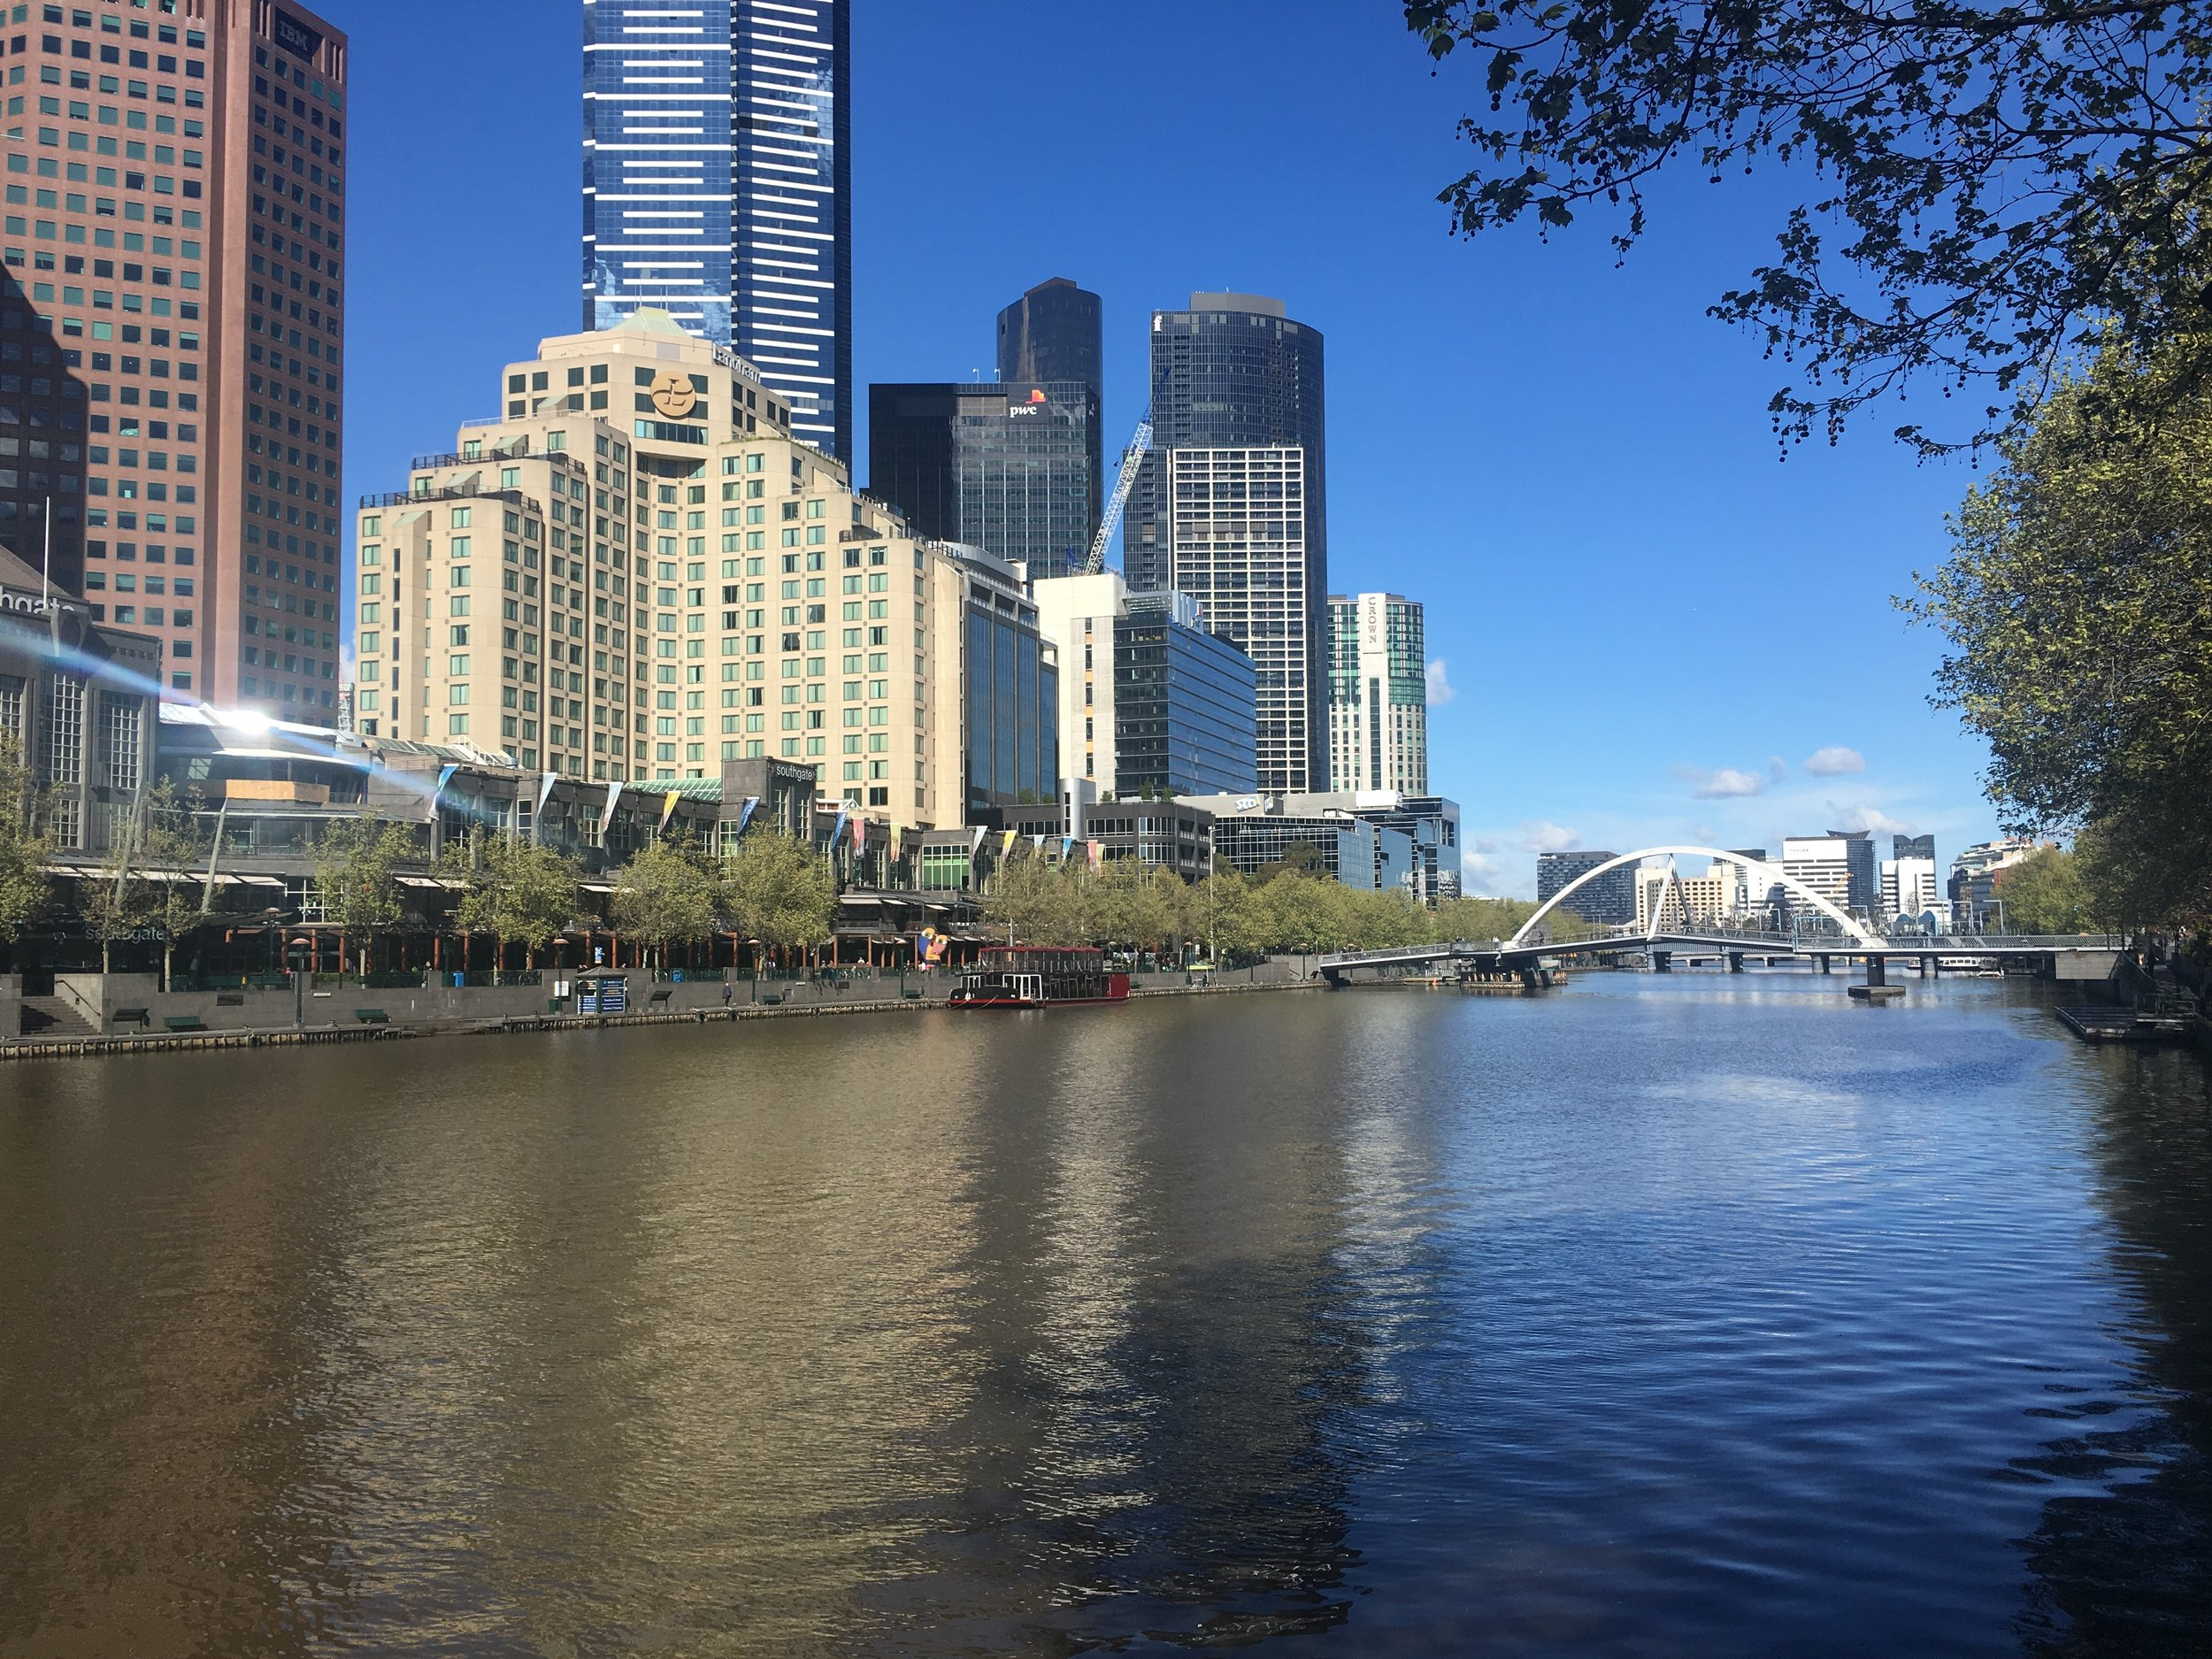 The Yarra River and South Bank region where you'll find bars, cafes, restaurants and the casino